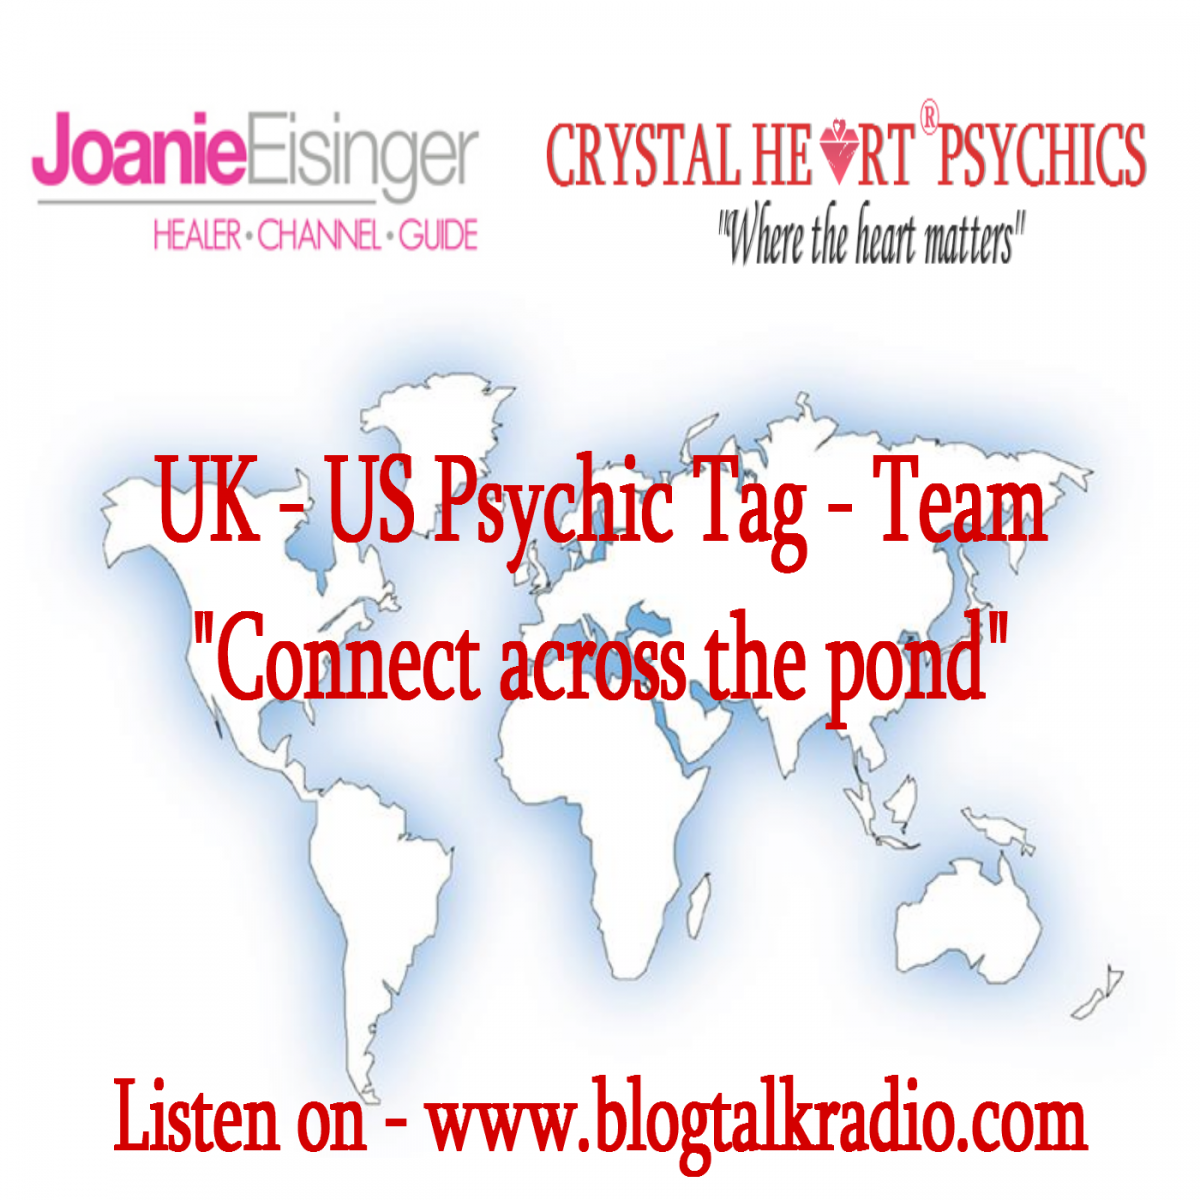 UK US Psychic tag team connect across the pond with Caroline of Crystal Heart Psychics